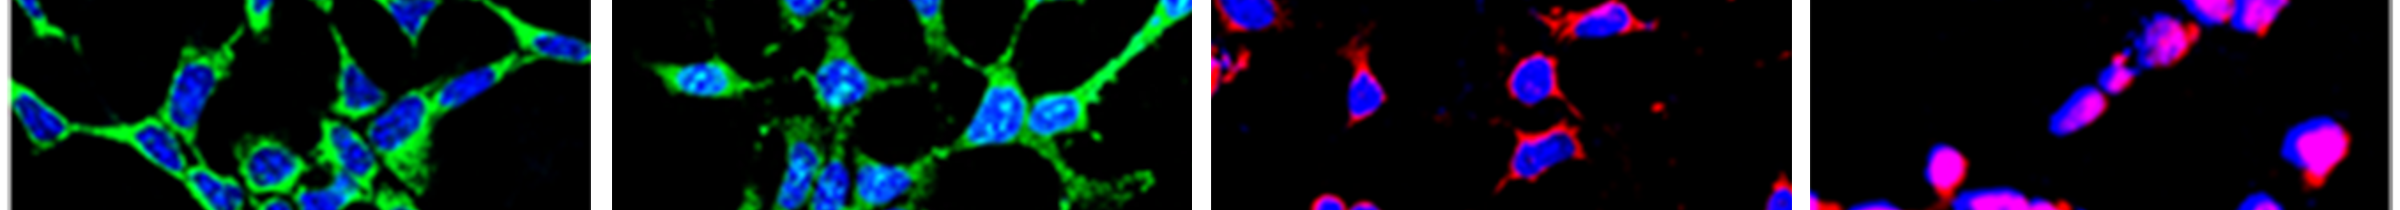 Figure 3. Expression of oligodendrocyte-specific cell type markers in F3.Olig2 cells and expression of motor neuron-specific cell type markers in F3.Olig2-Shh cells.